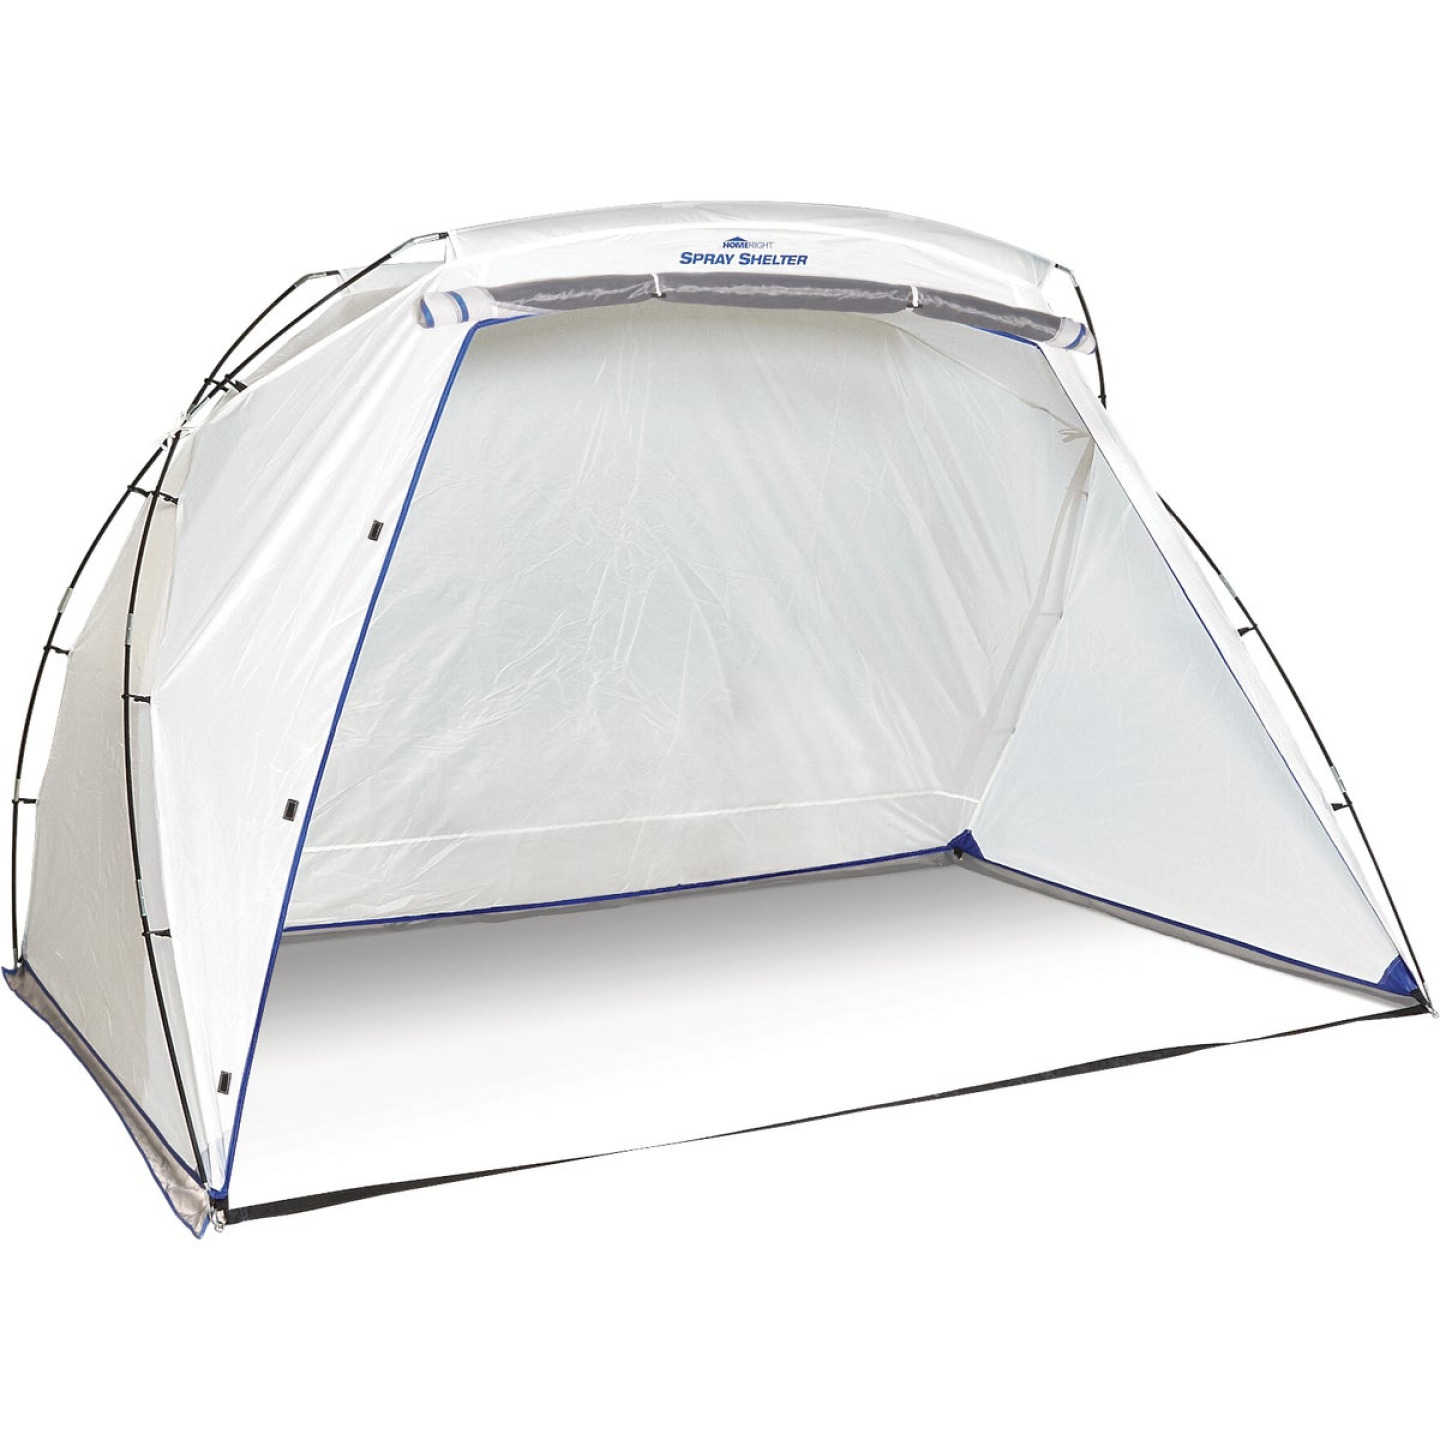 HomeRight 9 Ft. W. x 5.5 Ft. H. x 6 Ft. D. Large Portable Spray Shelter Image 1